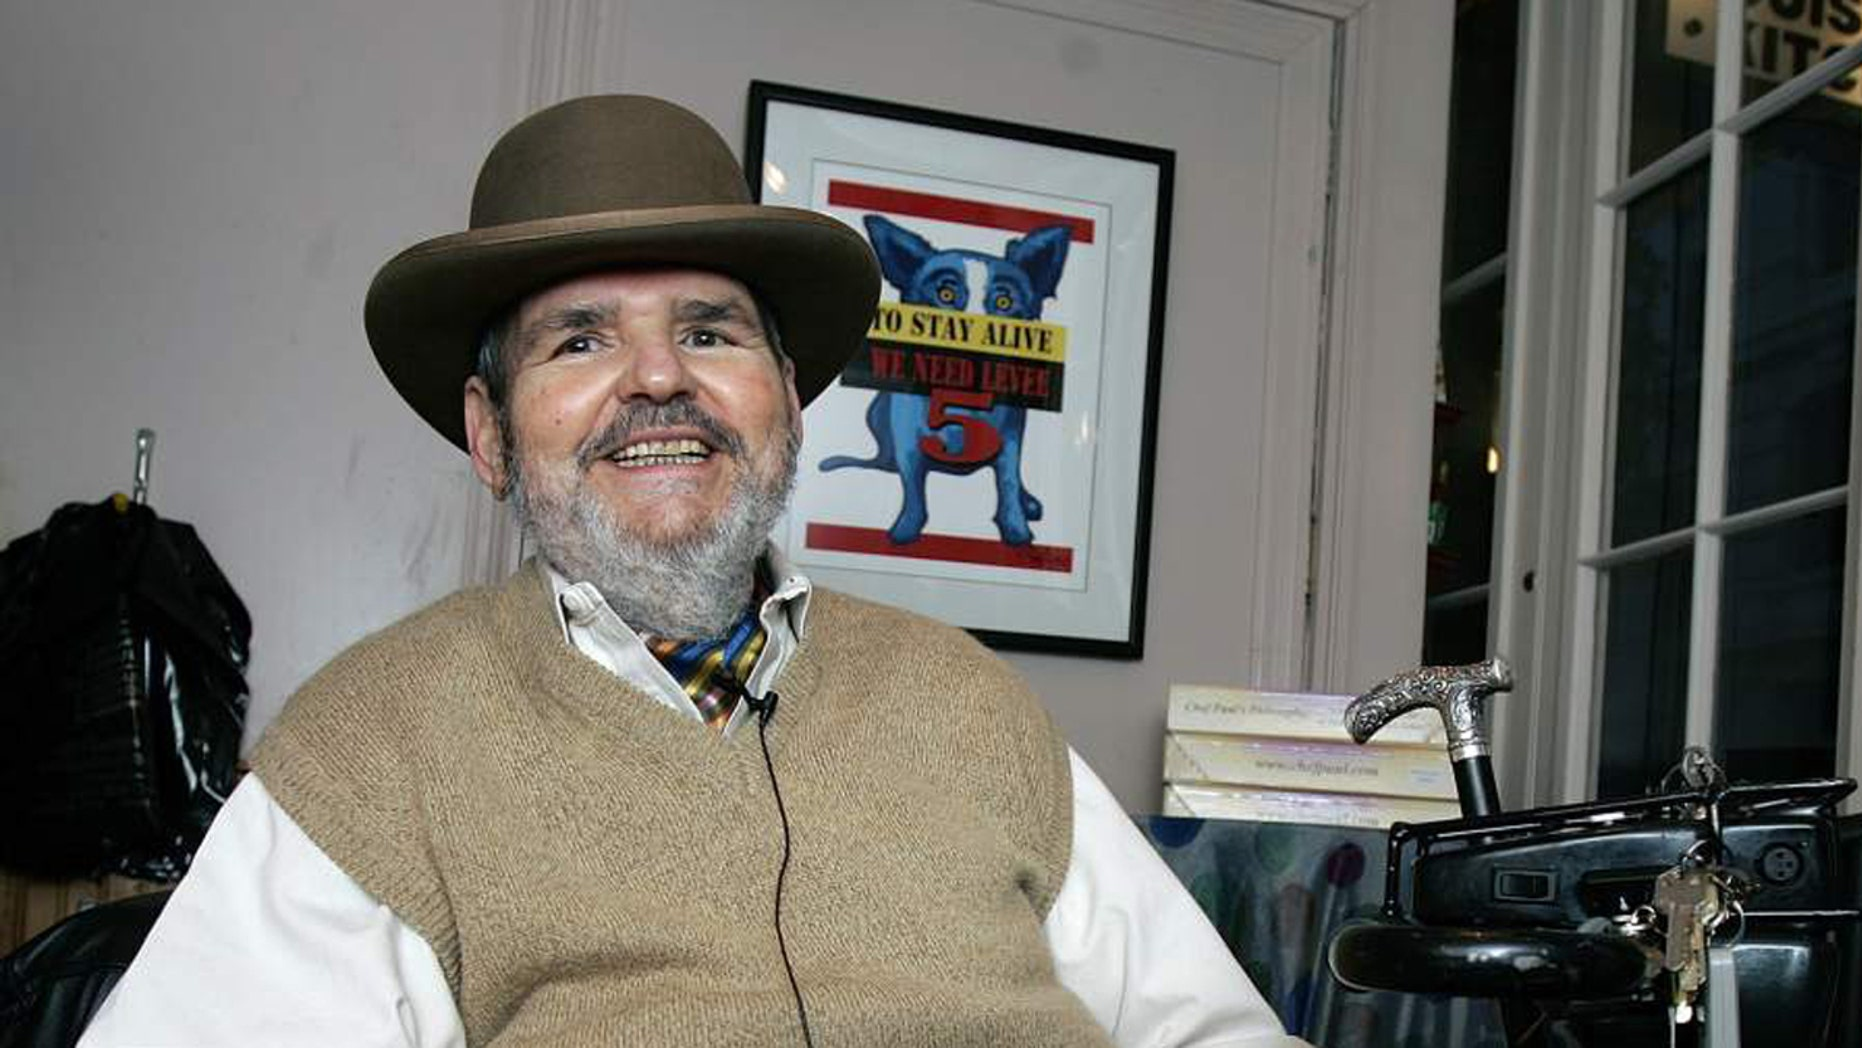 Paul Prudhomme has died at the age of 75.